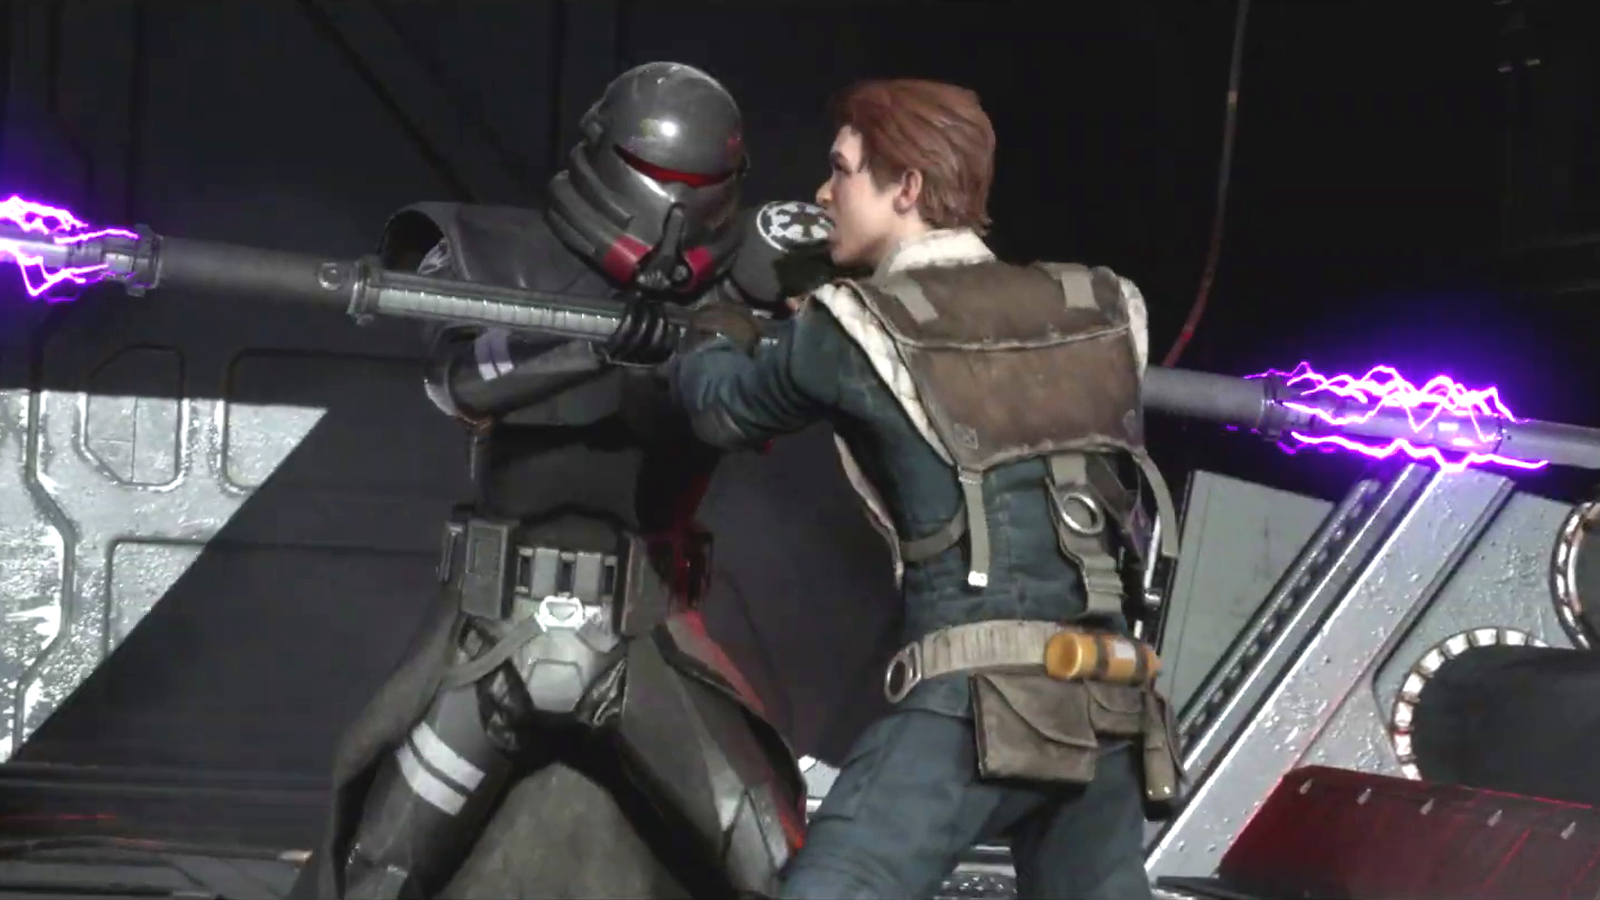 Star Wars Jedi Fallen Order which difficulty level to choose